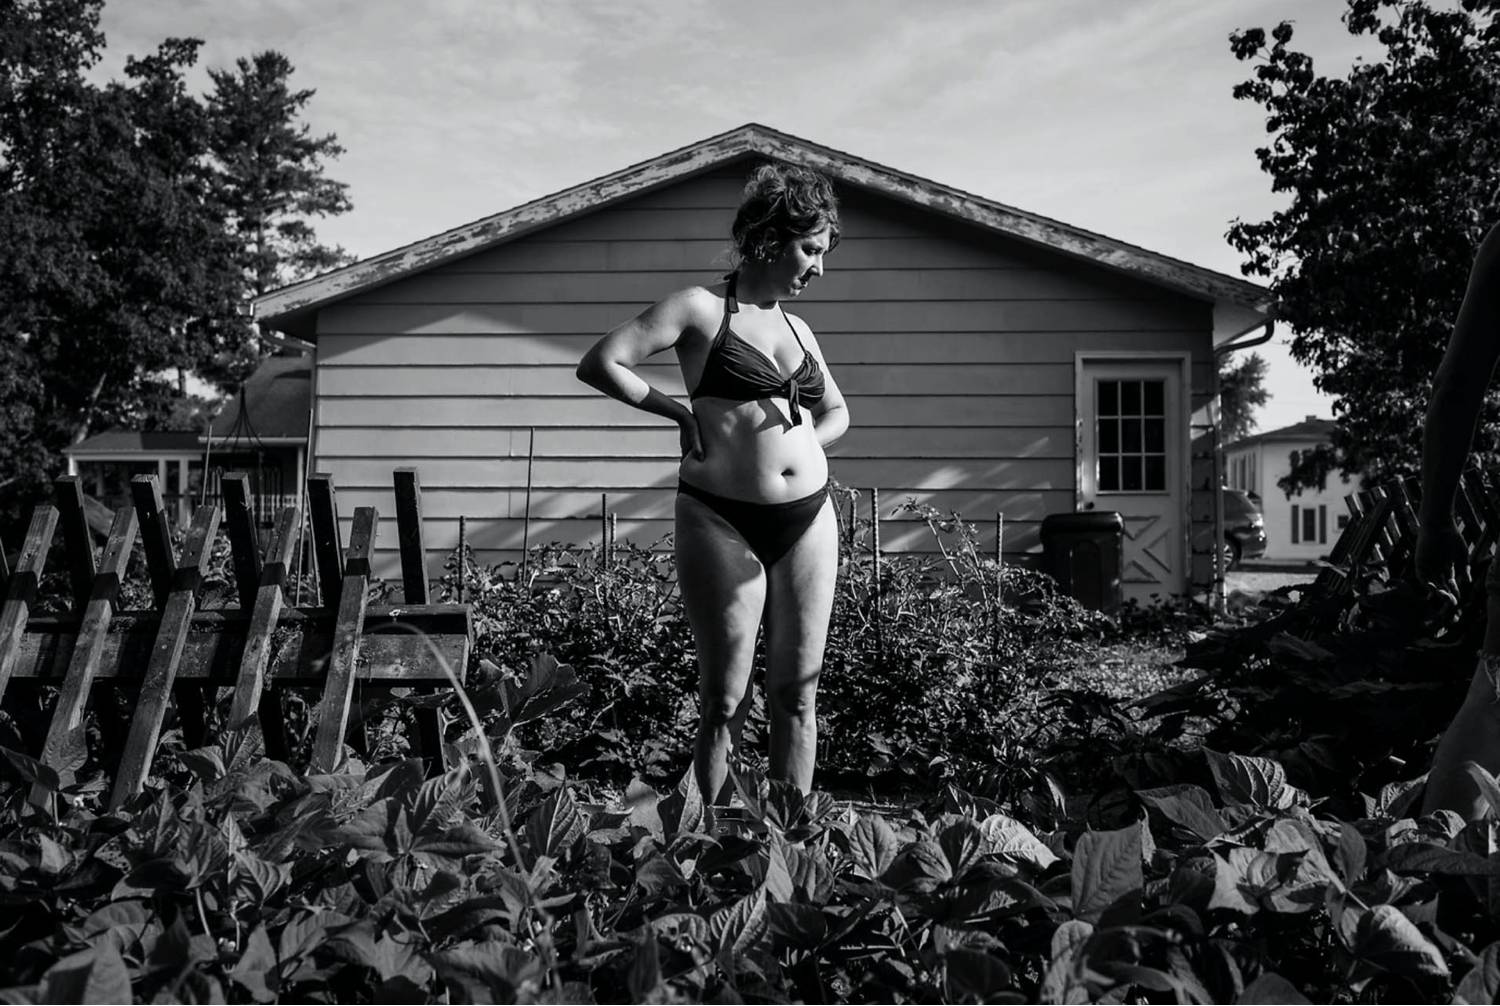 Photo: Rebecca Kiger's black and white photo of a woman in a bikini standing in her brightly sunlit garden.